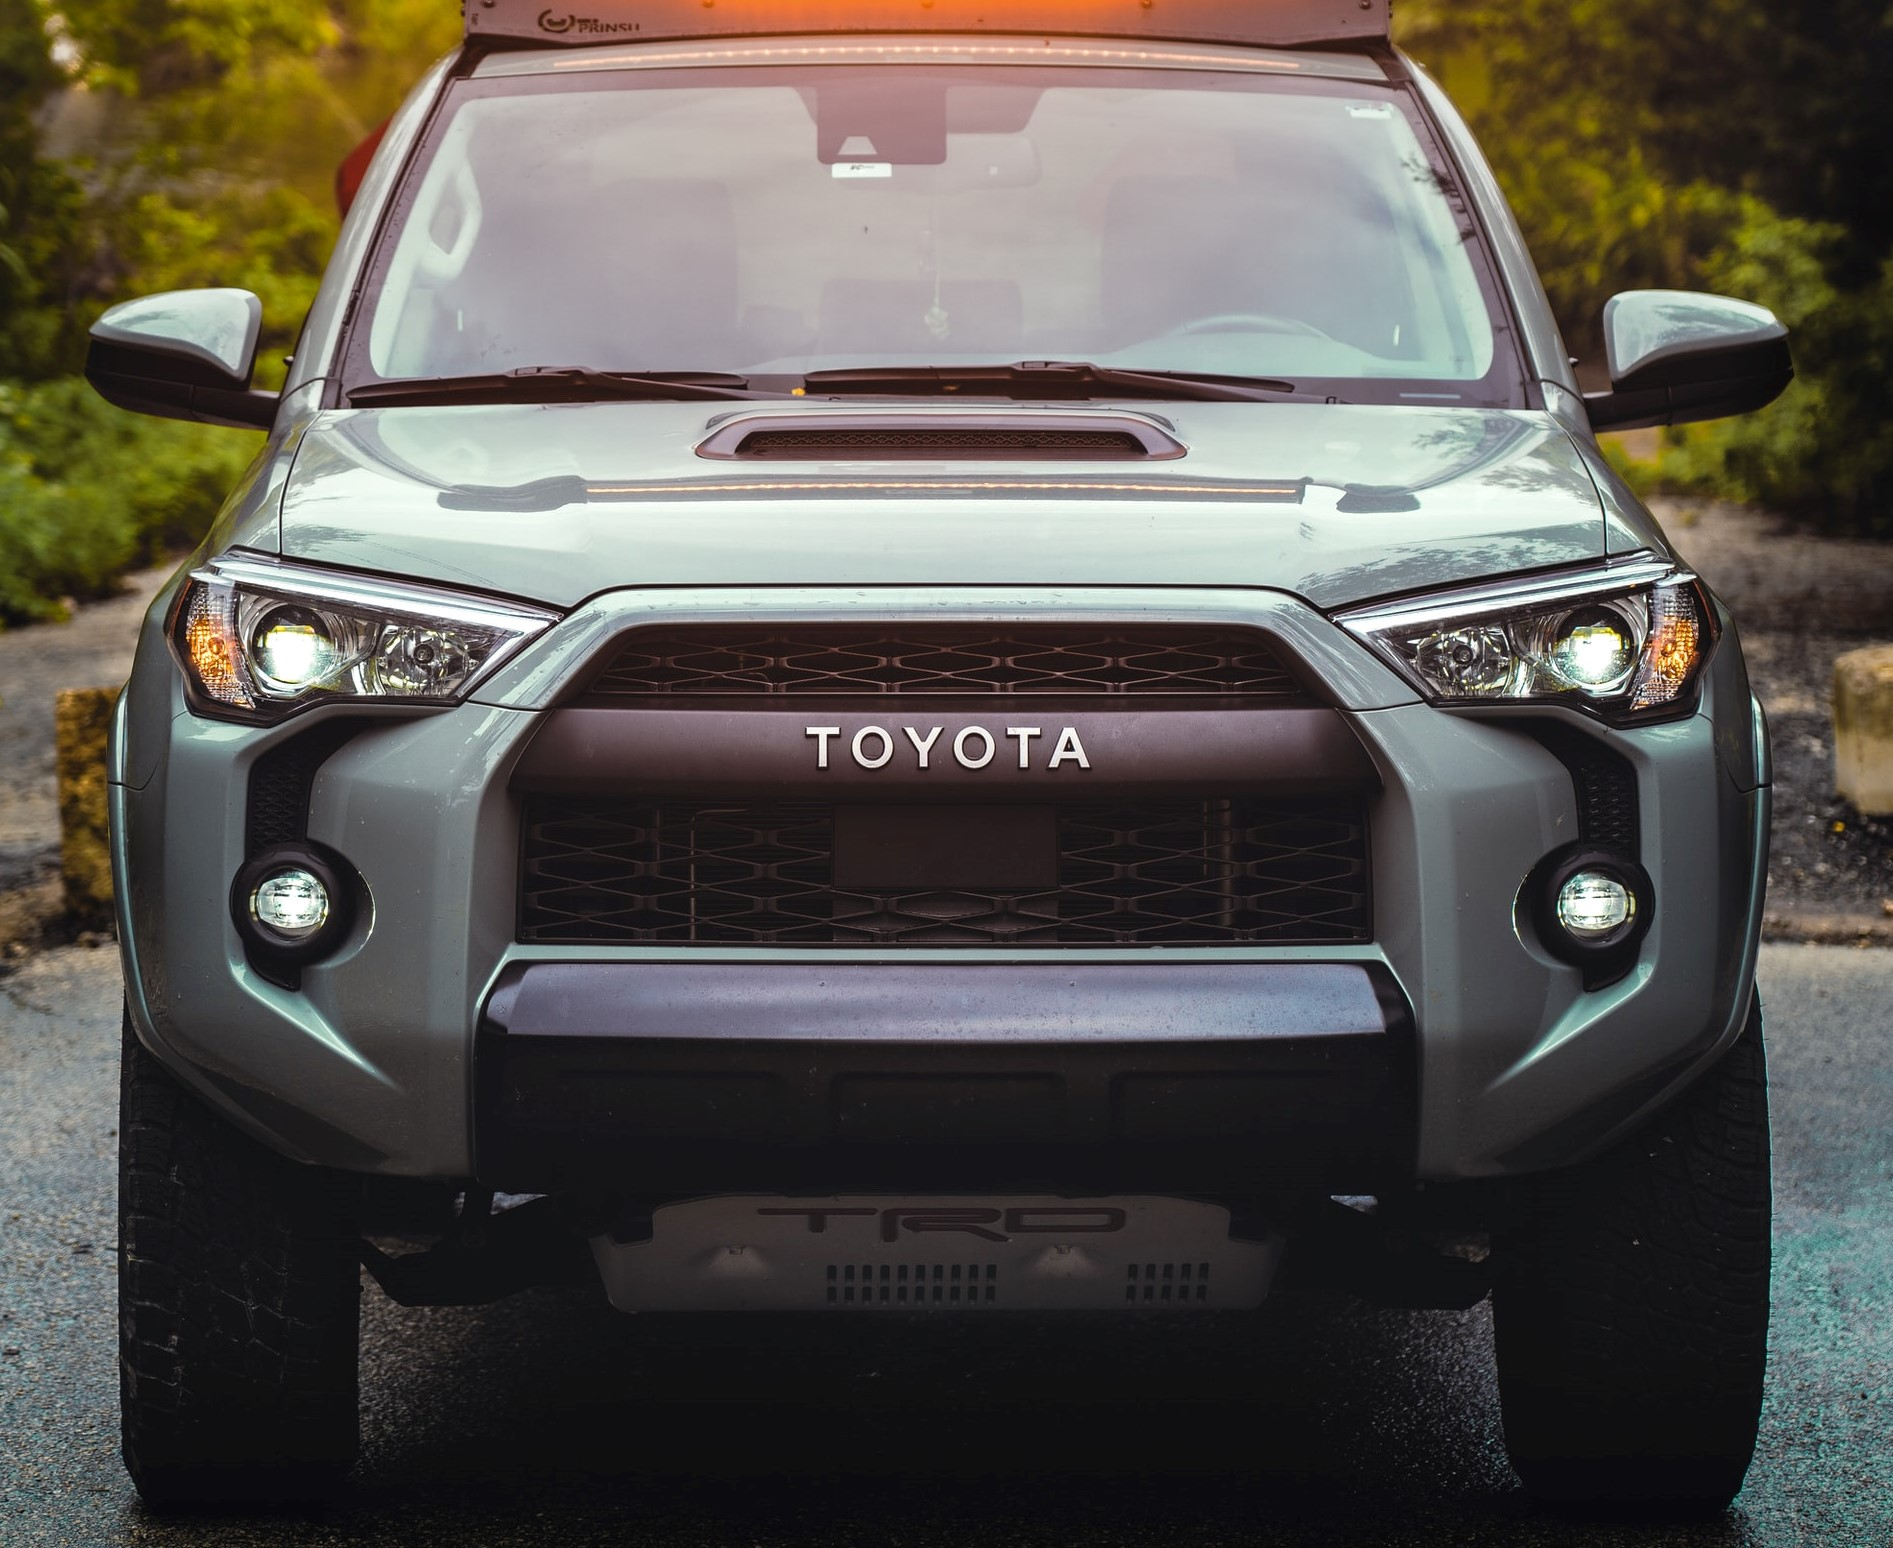 Toyota Tundras are Recalled Over Fire-Prone Headlamps